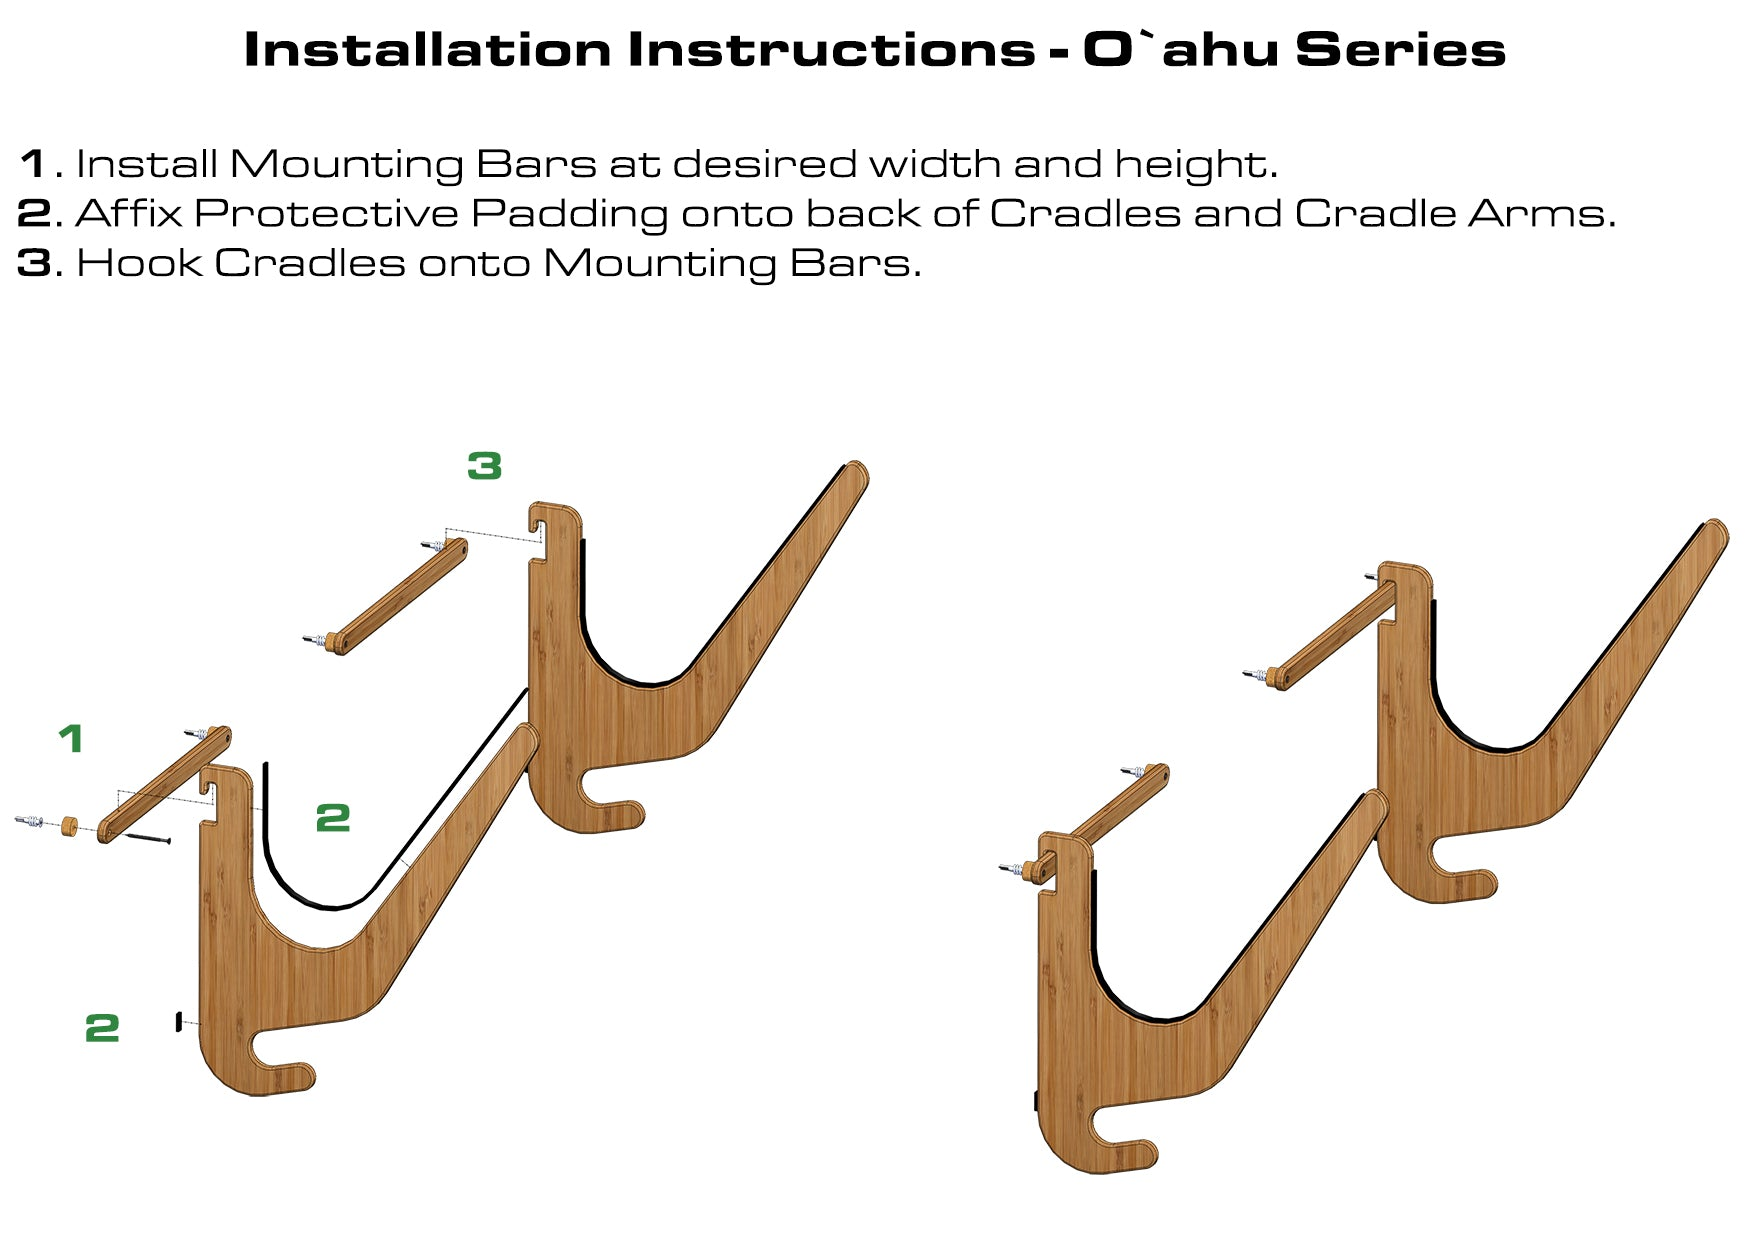 SUP Rack Installation Instructions - Bamboo Paddleboard Rack by Grassracks